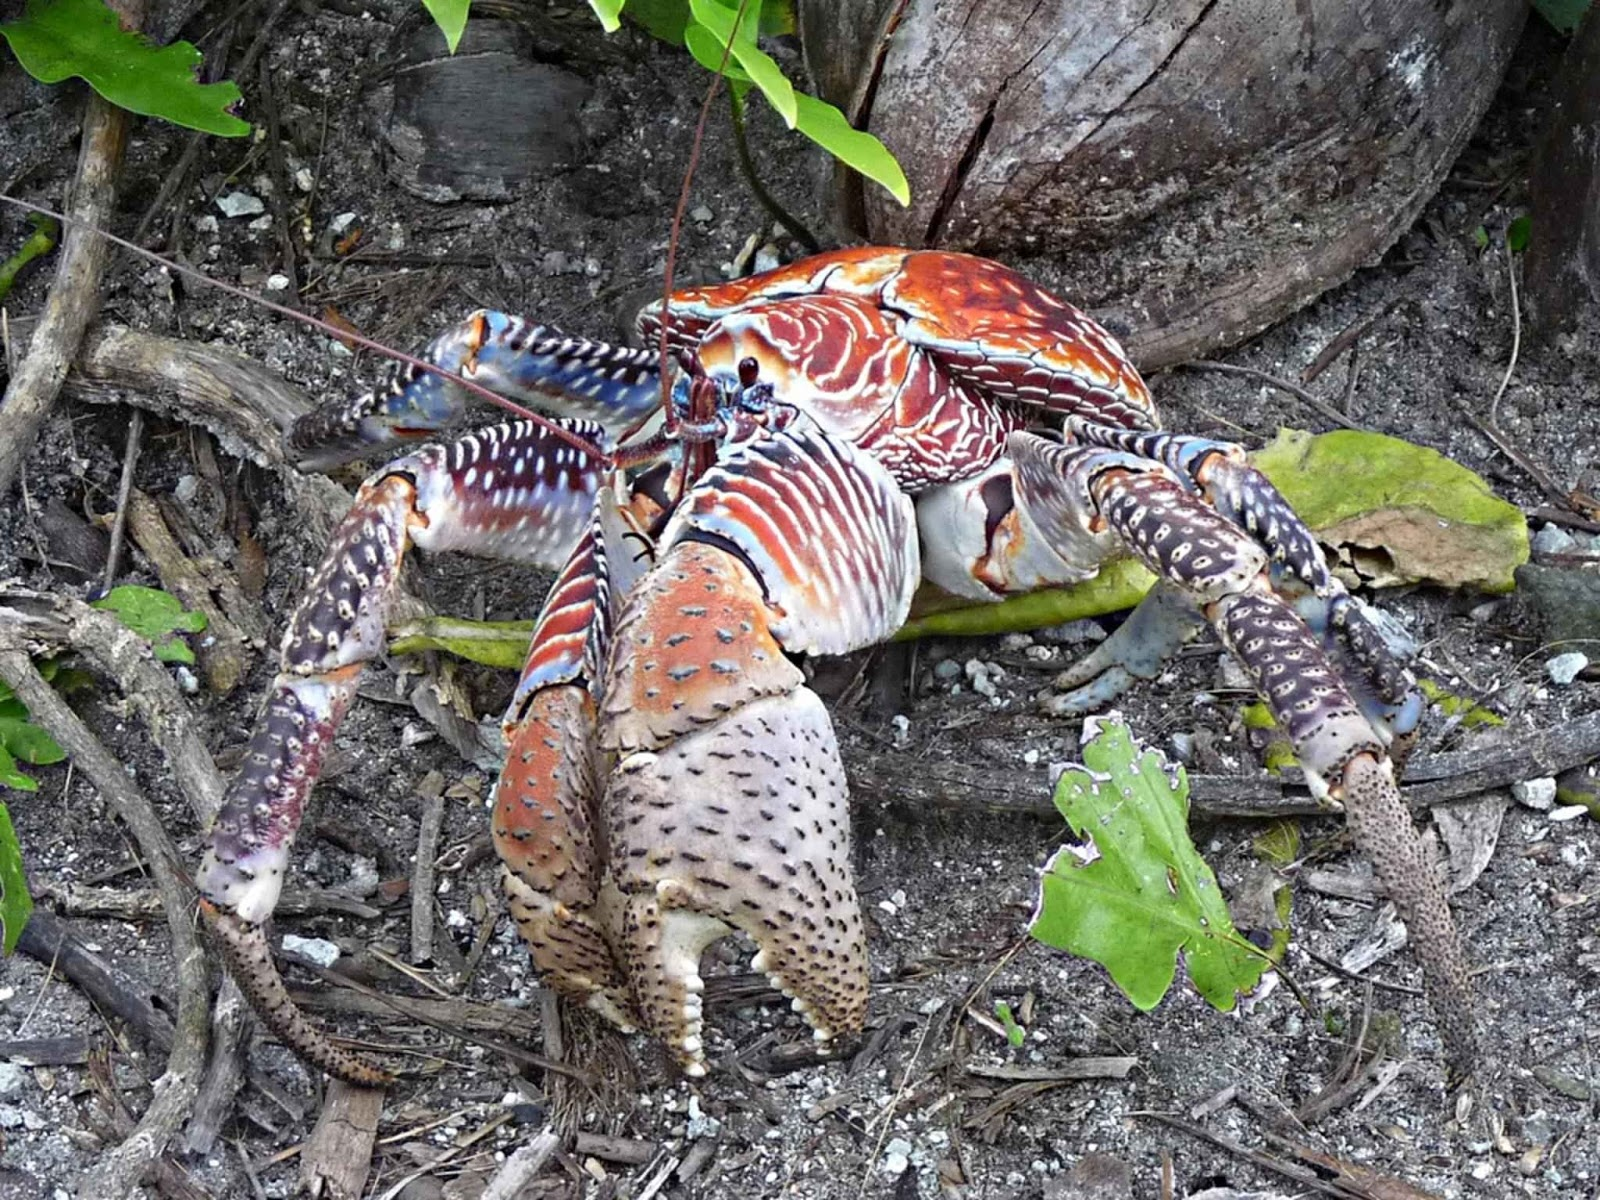 Image of a coconut crab.